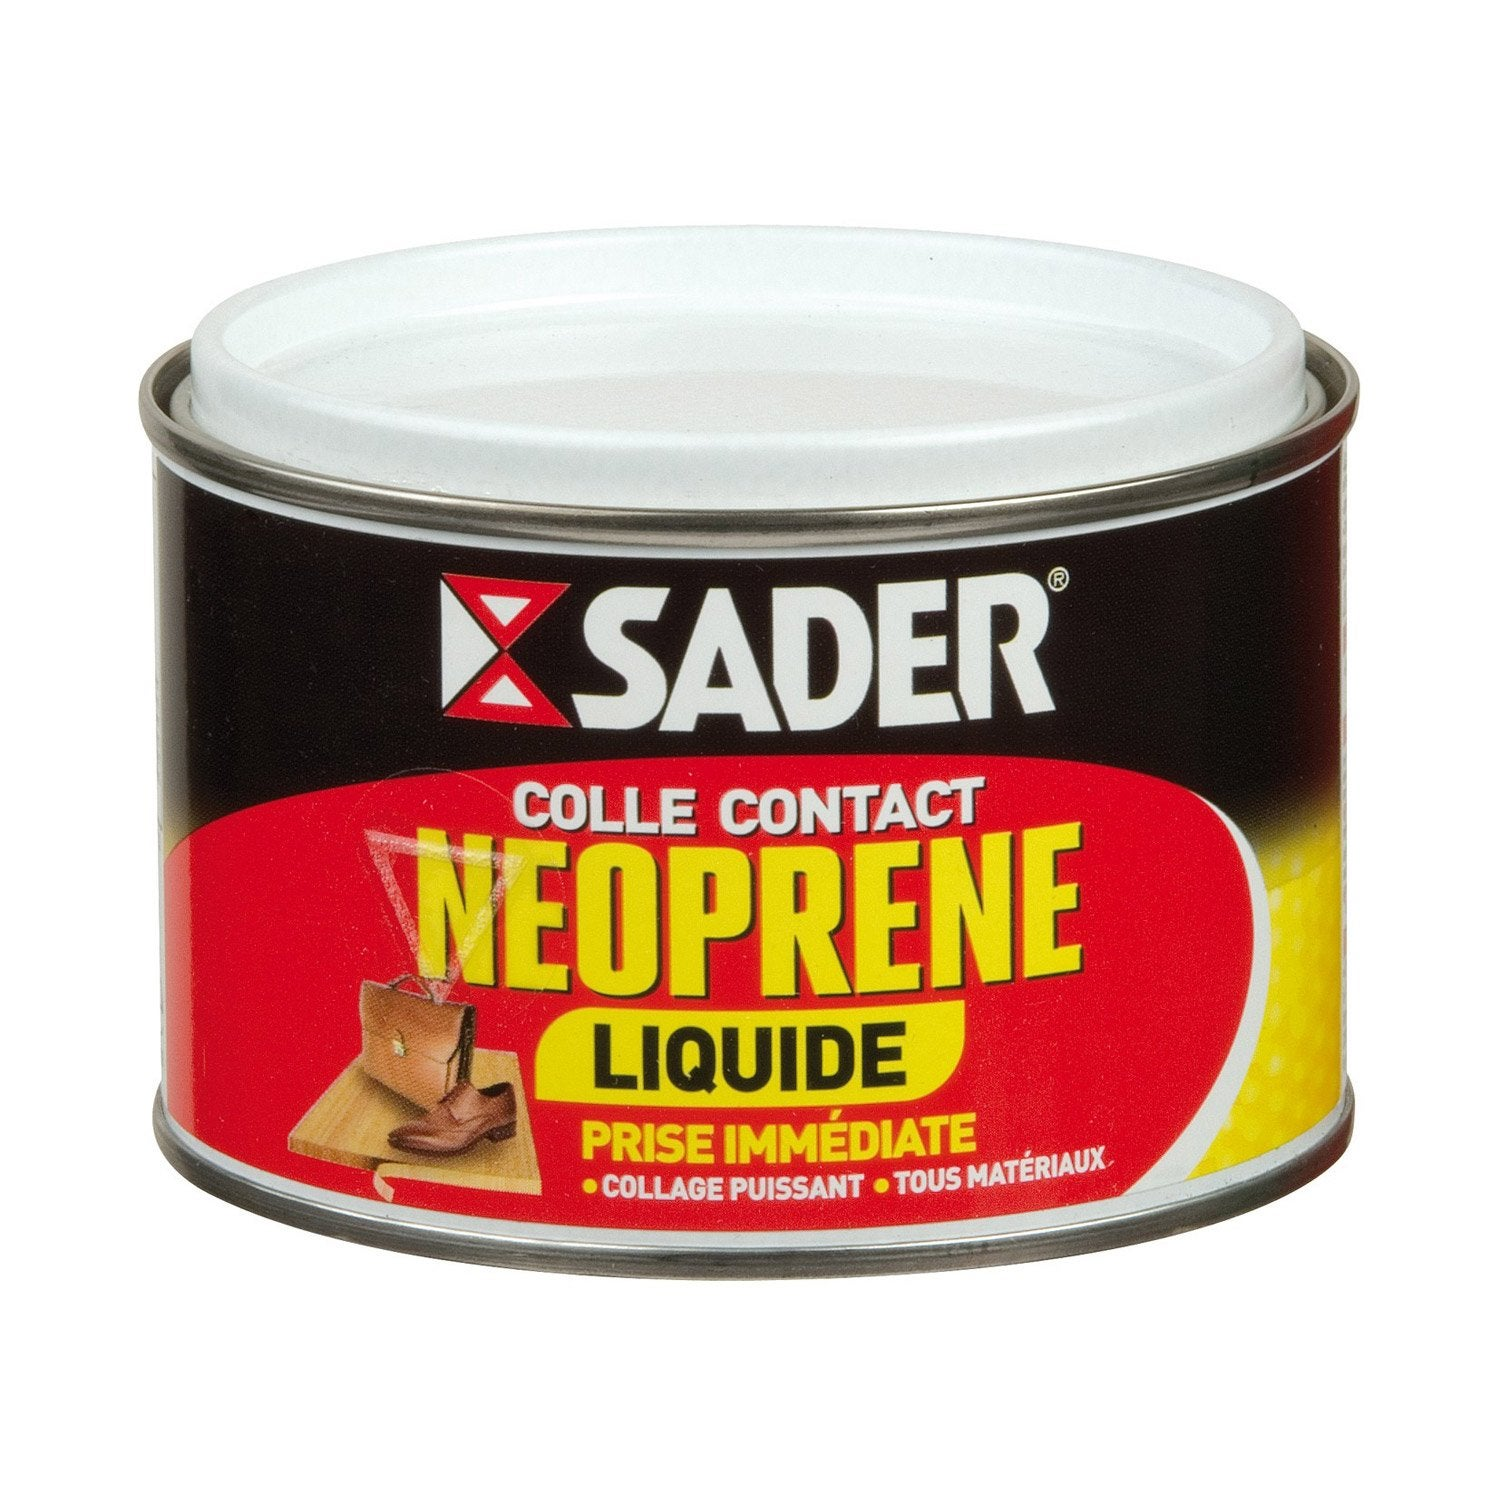 Colle n opr ne liquide multi usages sader 250ml leroy - Colle neoprene en bombe ...